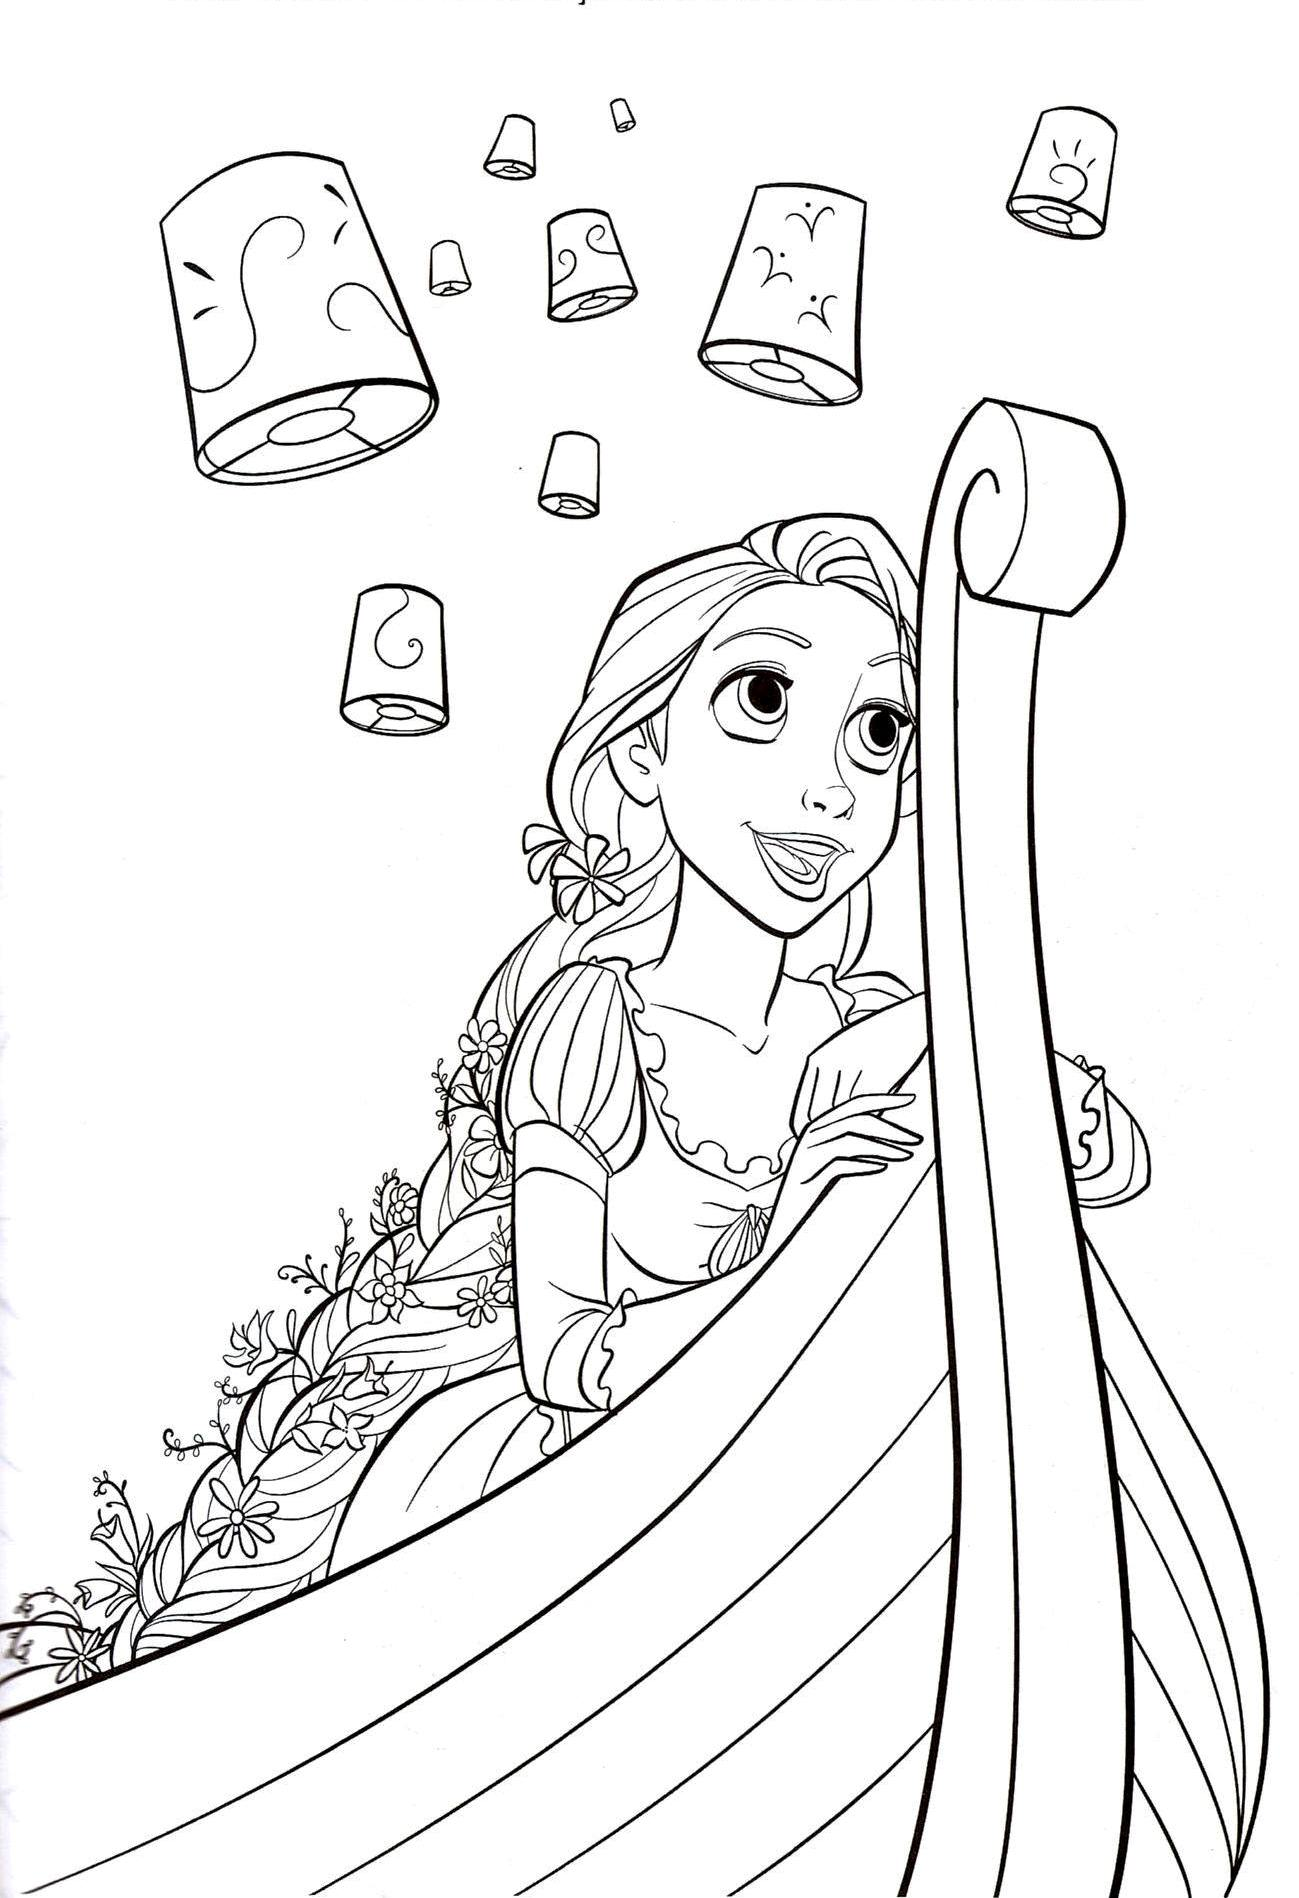 Tangled coloring pages 360coloringpages for Tangled coloring pages